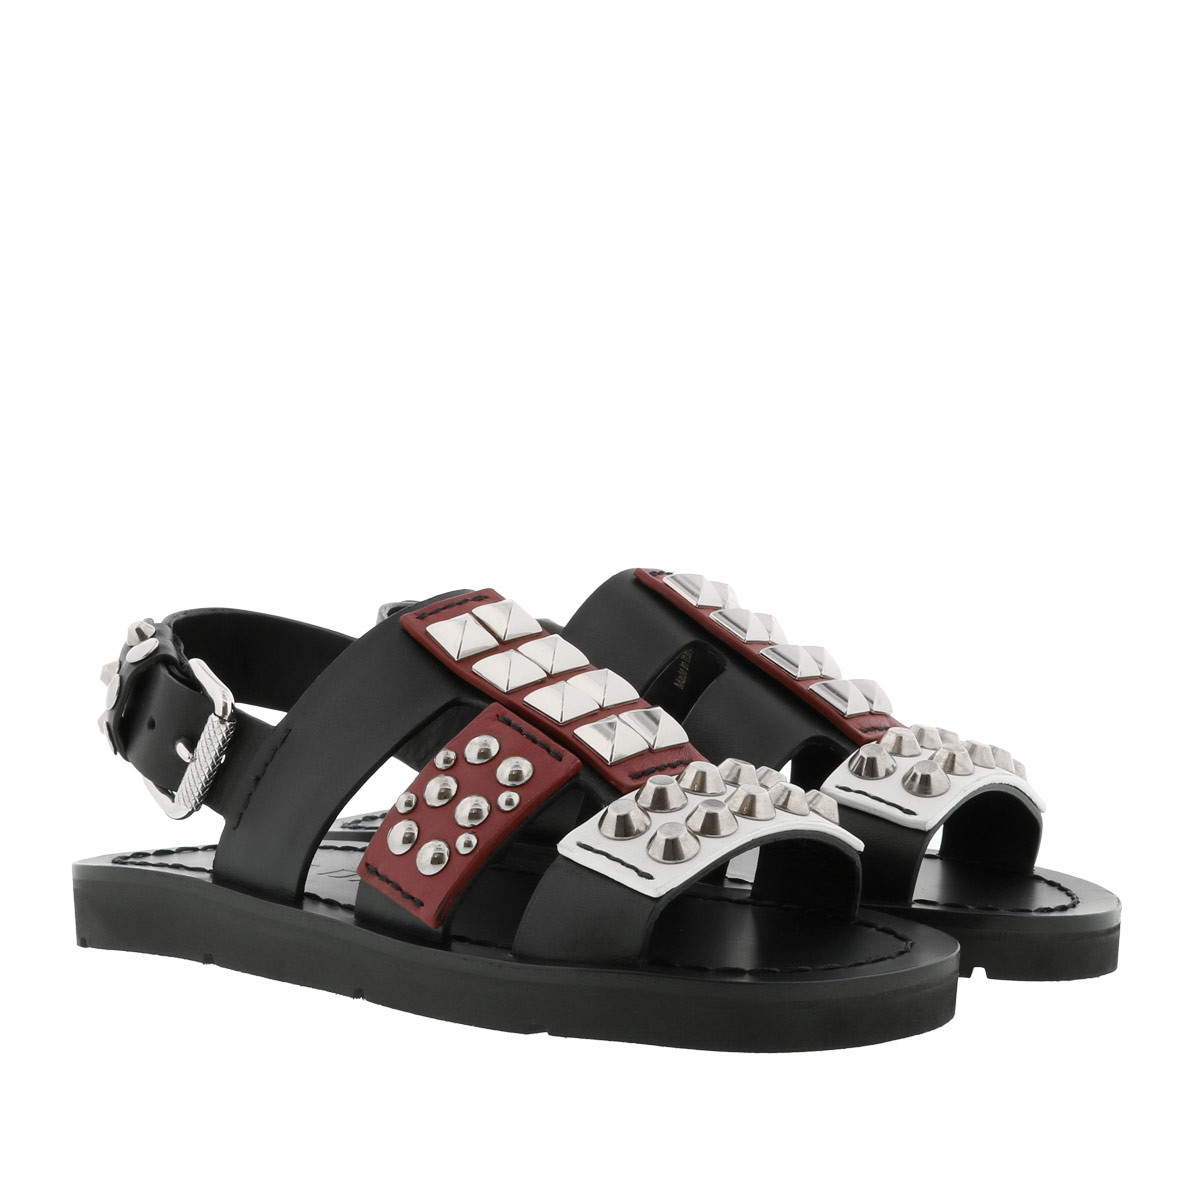 Prada Sandalen - Studded Sandals Nero/Scarlatto - in schwarz - für Damen